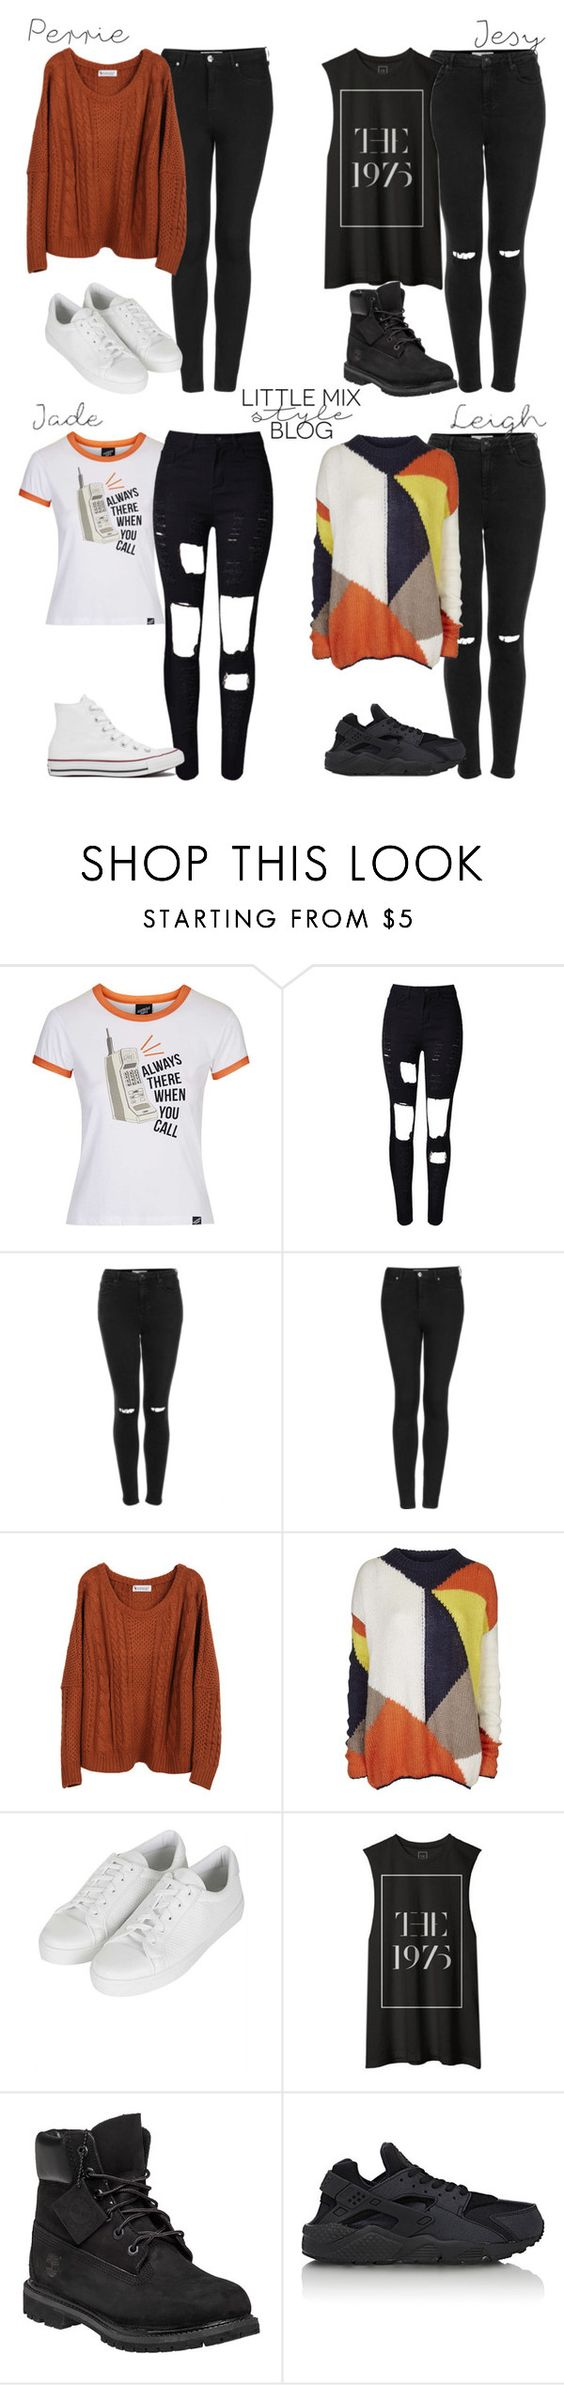 """""""*REQUESTED* LM Inspired Casual Outfits with Black Jeans"""" by littlemix-styleblog ❤ liked on Polyvore featuring Topshop, Timberland, NIKE, Converse, women's clothing, women, female, woman, misses and juniors"""